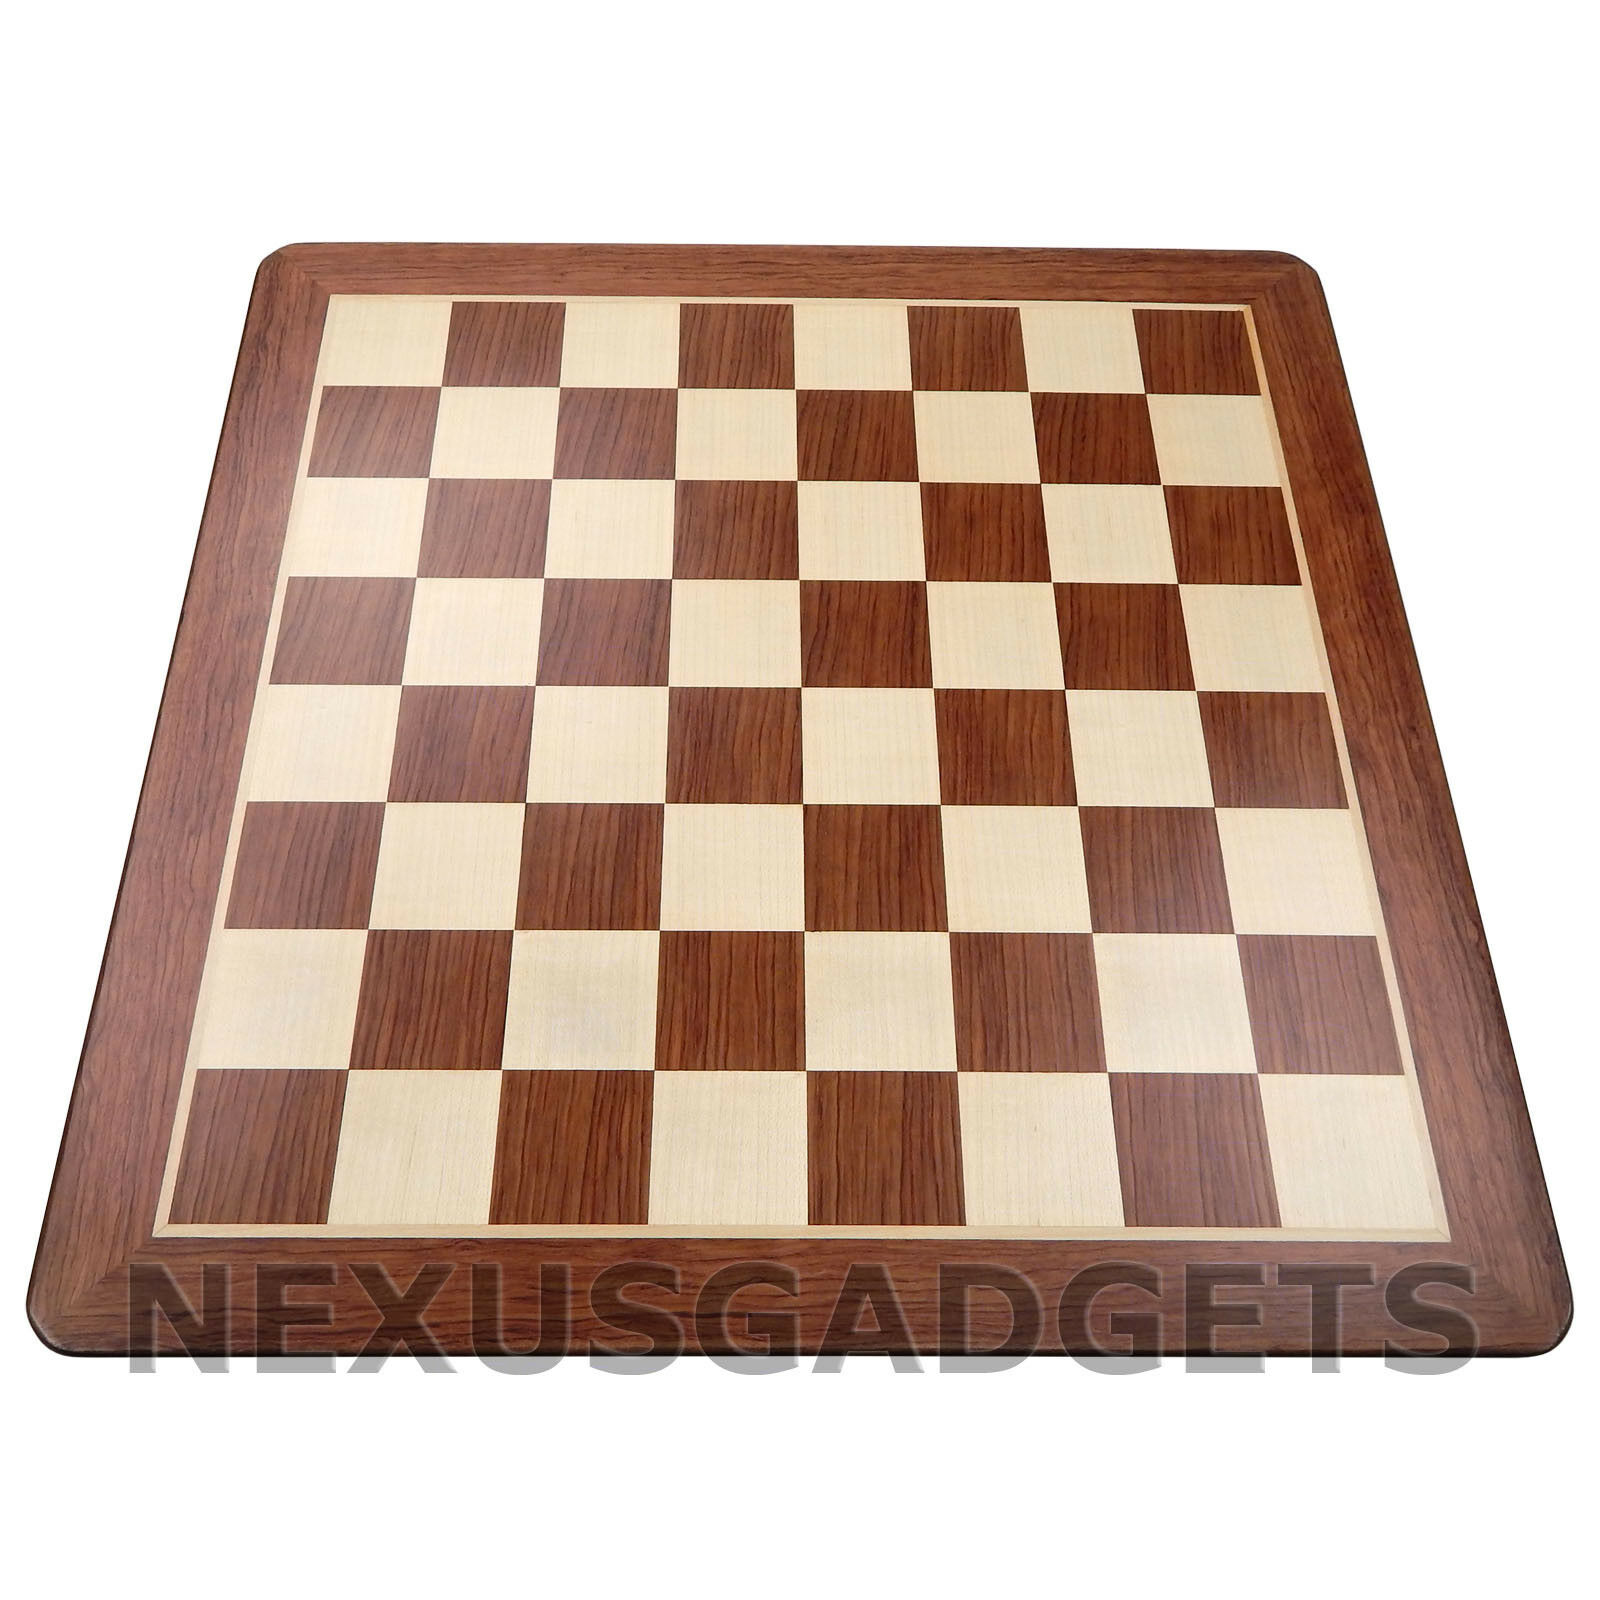 Tena Chess 19 INCH EXTRA LARGE Wood Game Set Flat Inlaid Wooden BOARD ONLY New